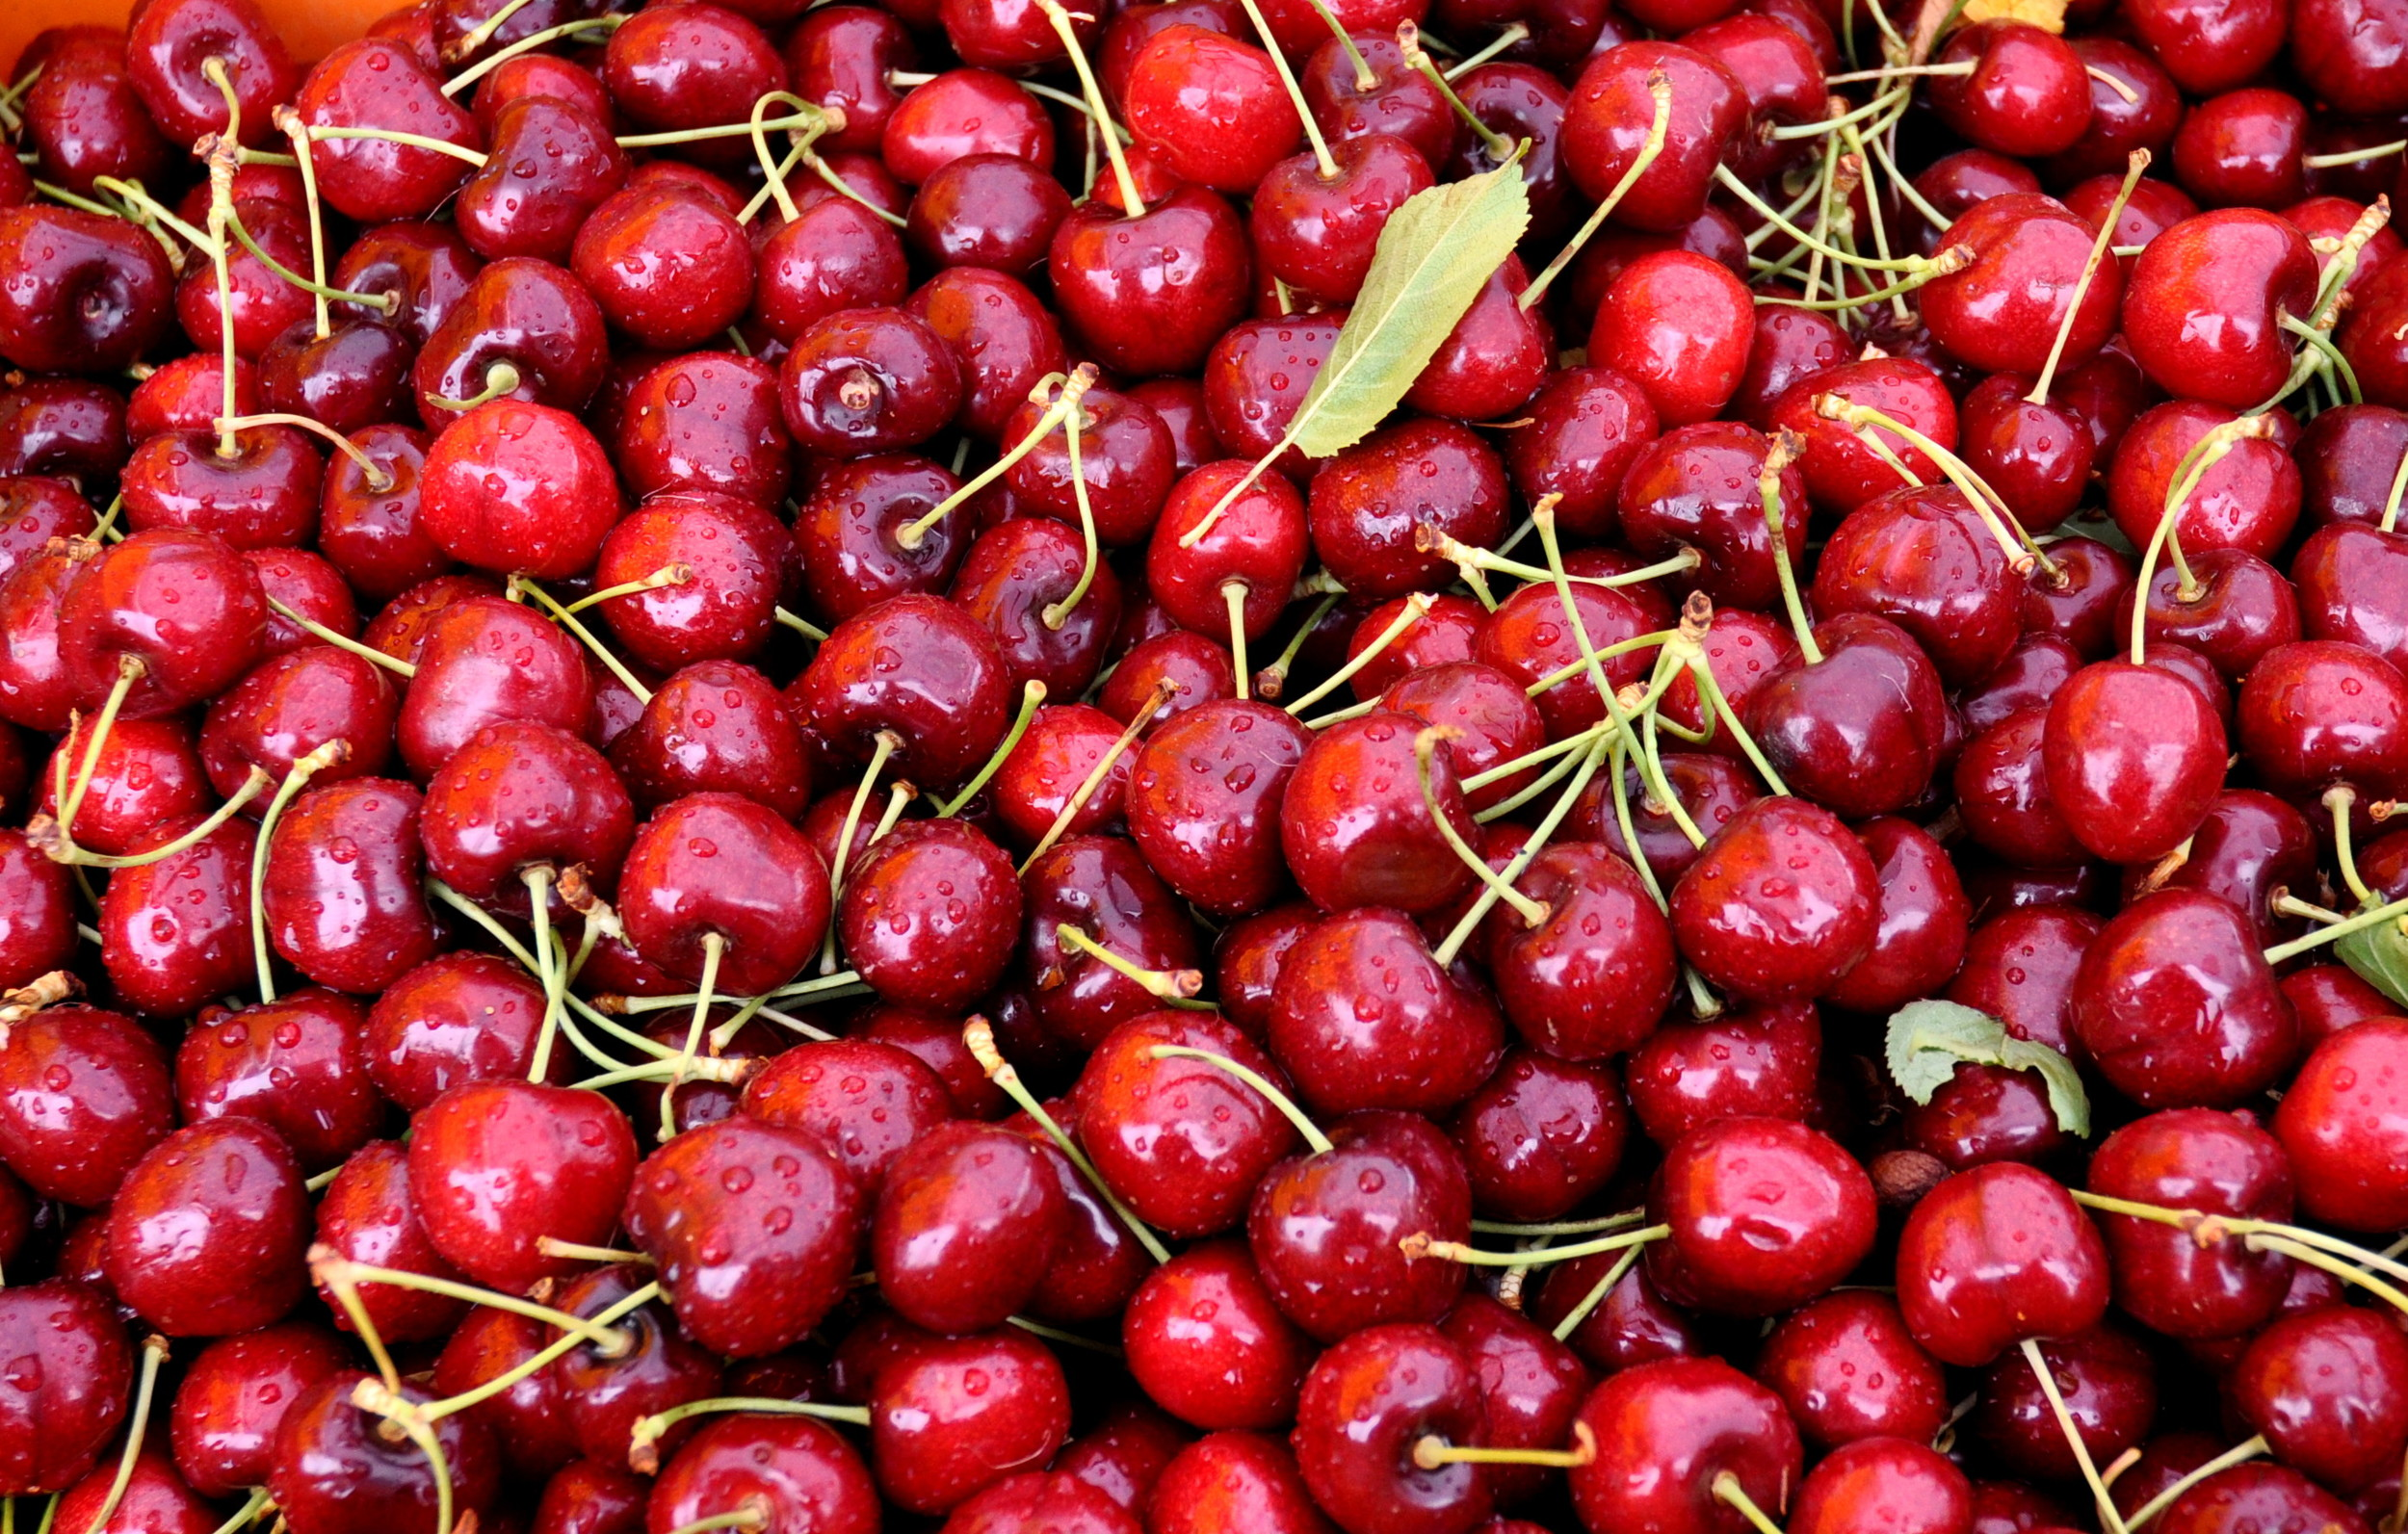 Sweetheart cherries from Lyall Farms. Photo copyright 2014 by Zachary D. Lyons.